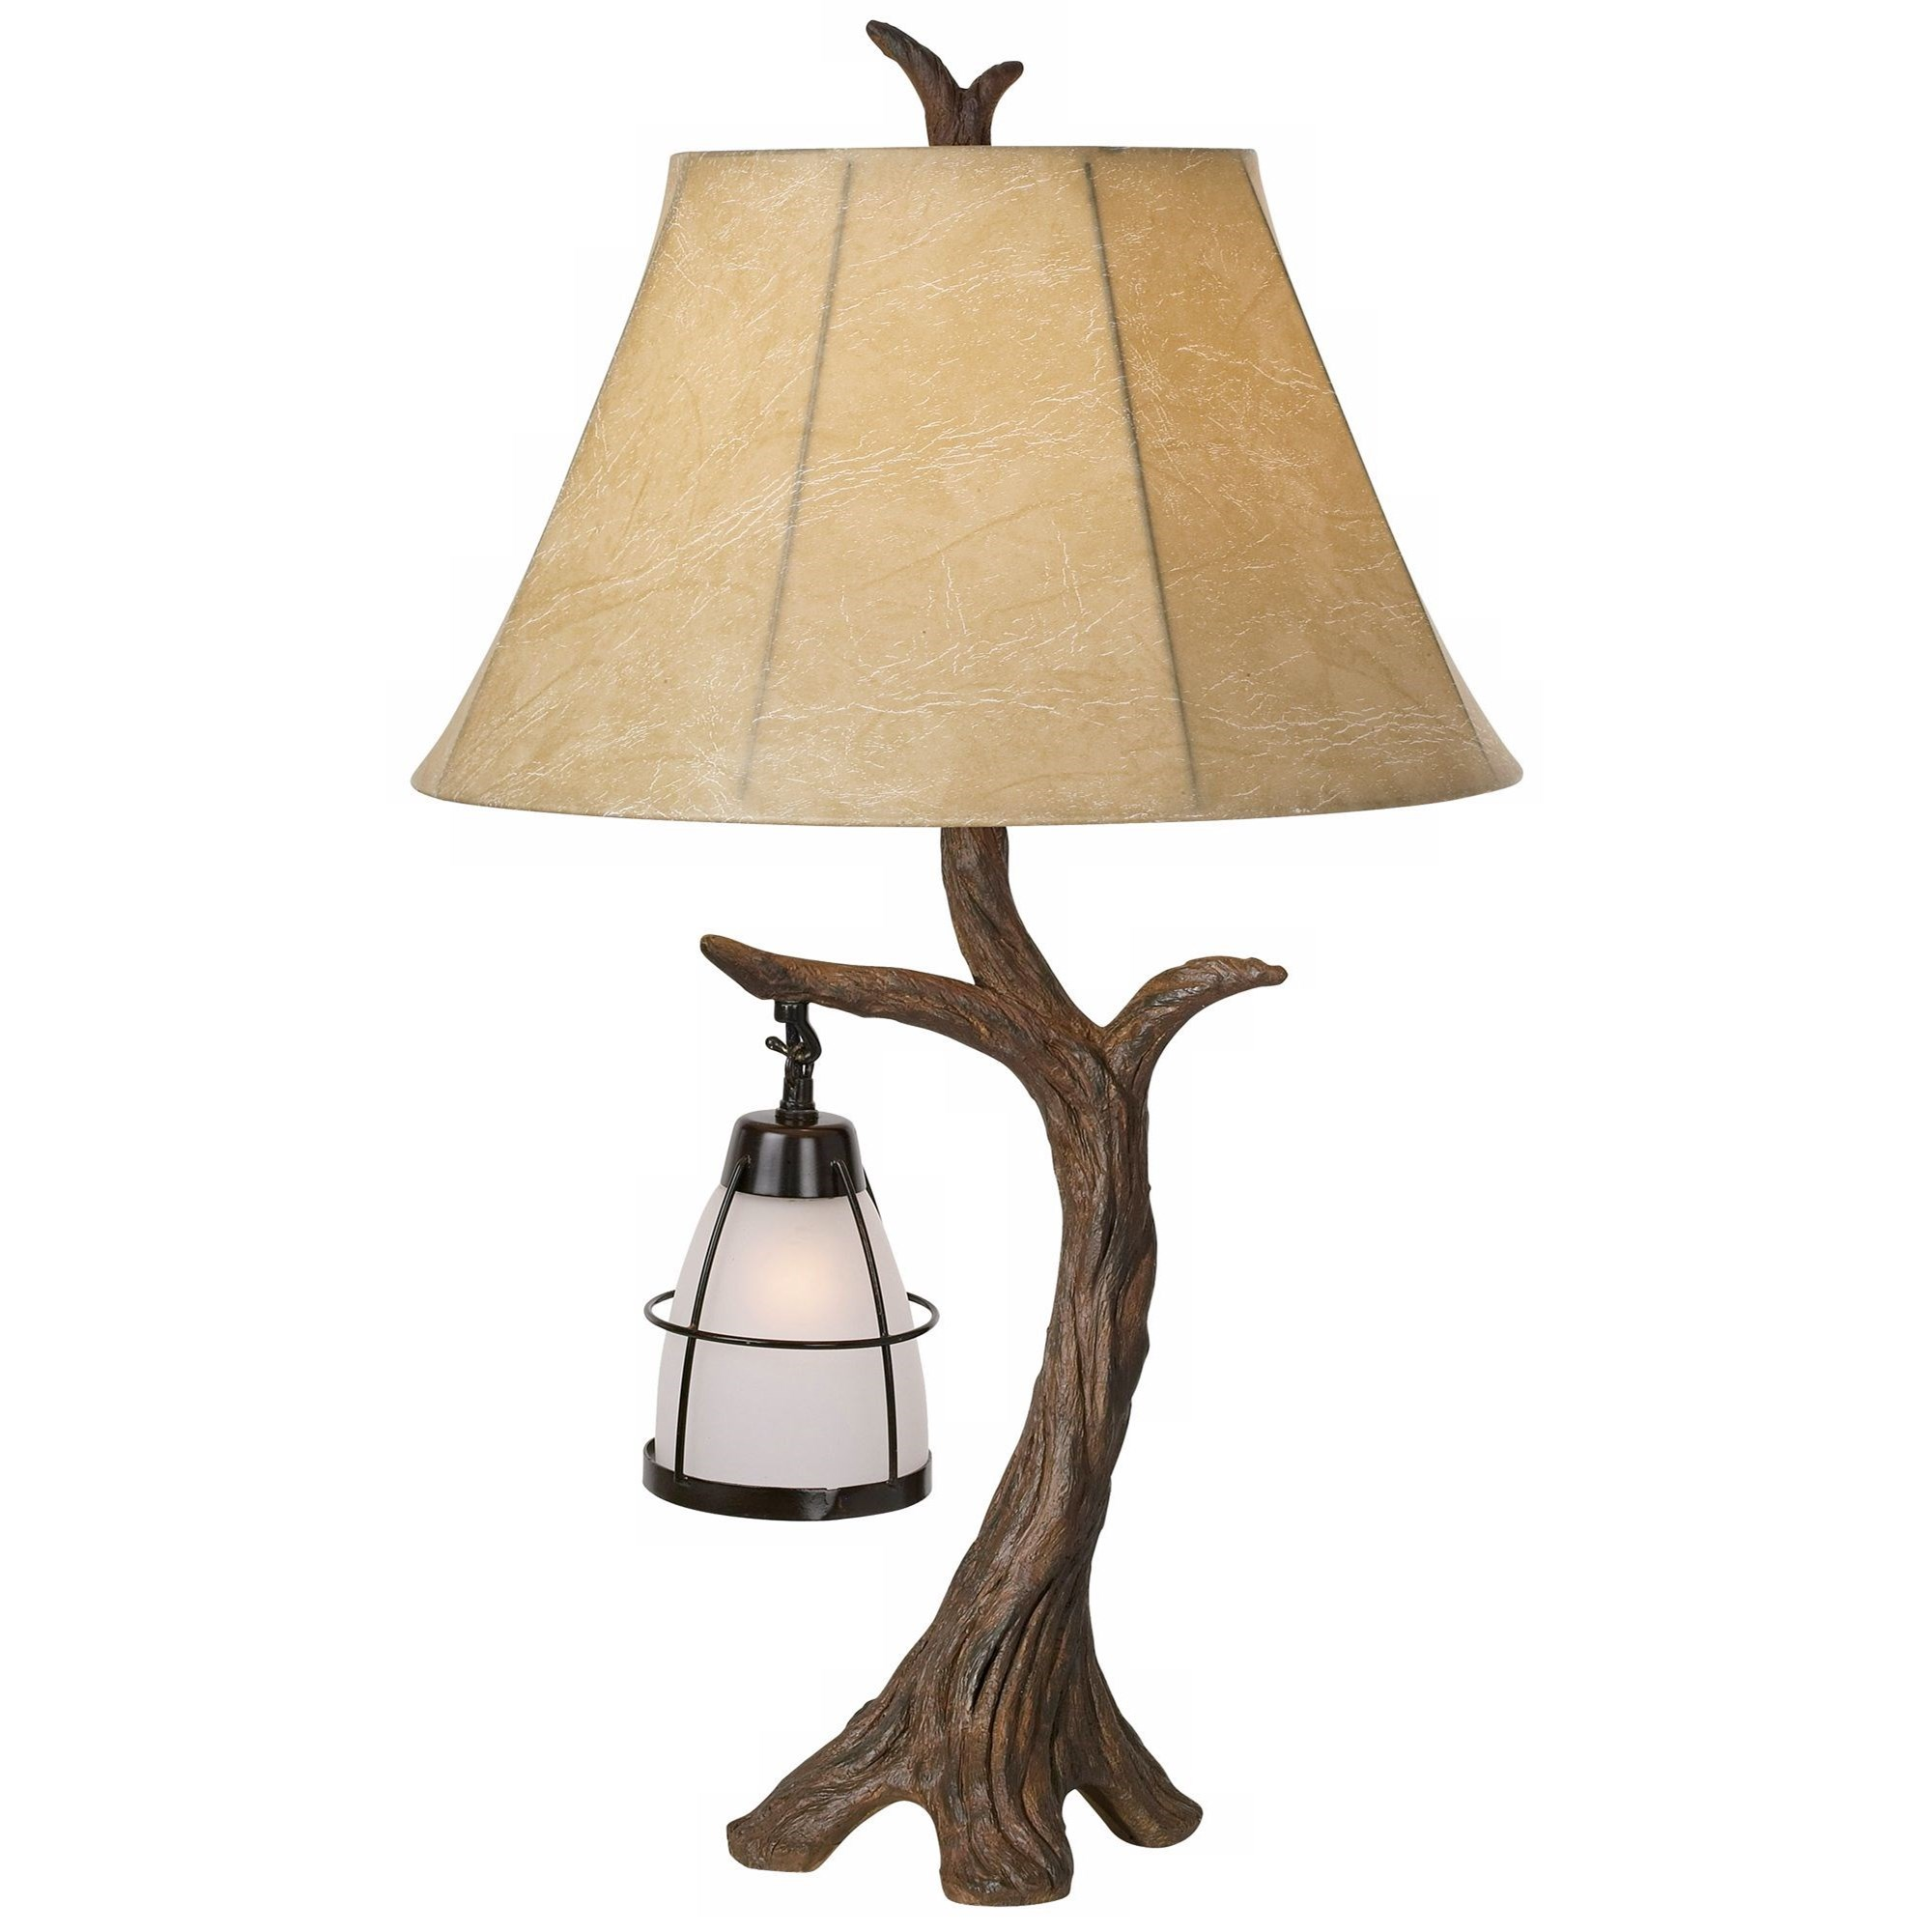 Table Lamps Mountain Wind Collection Lamp at Bennett's Furniture and Mattresses